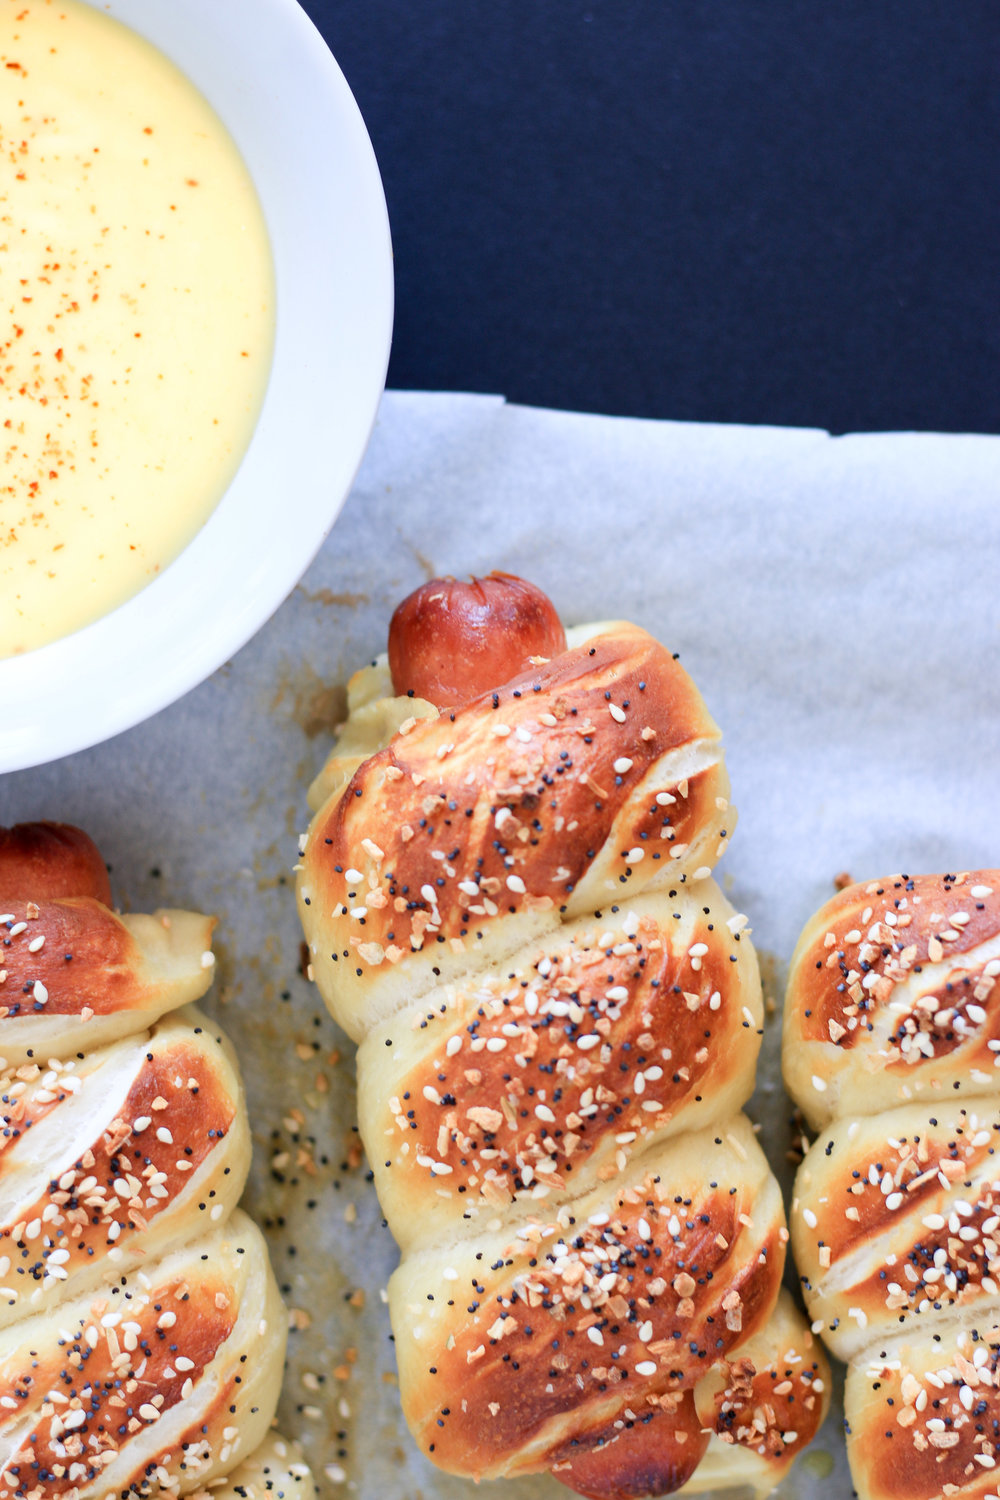 Pretzel Wrapped Hot Dogs with Everything Bagel Spice and Cheesy Mustard Dipping Sauce